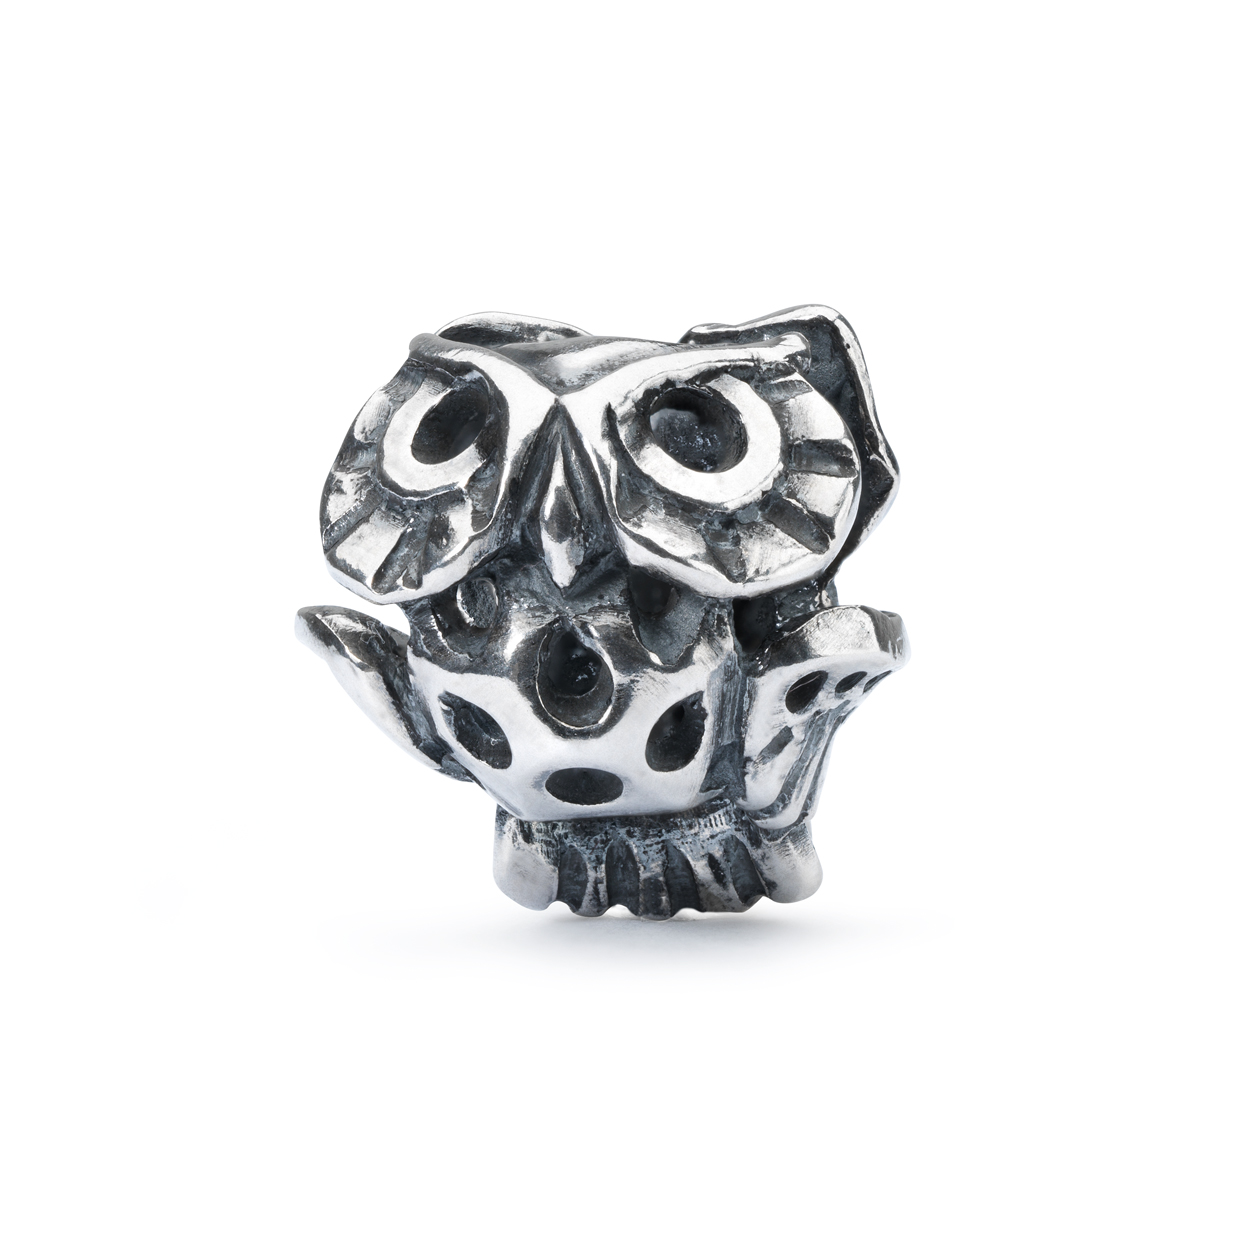 tagbe 30140 trollbeads sage hibou acheter en ligne. Black Bedroom Furniture Sets. Home Design Ideas